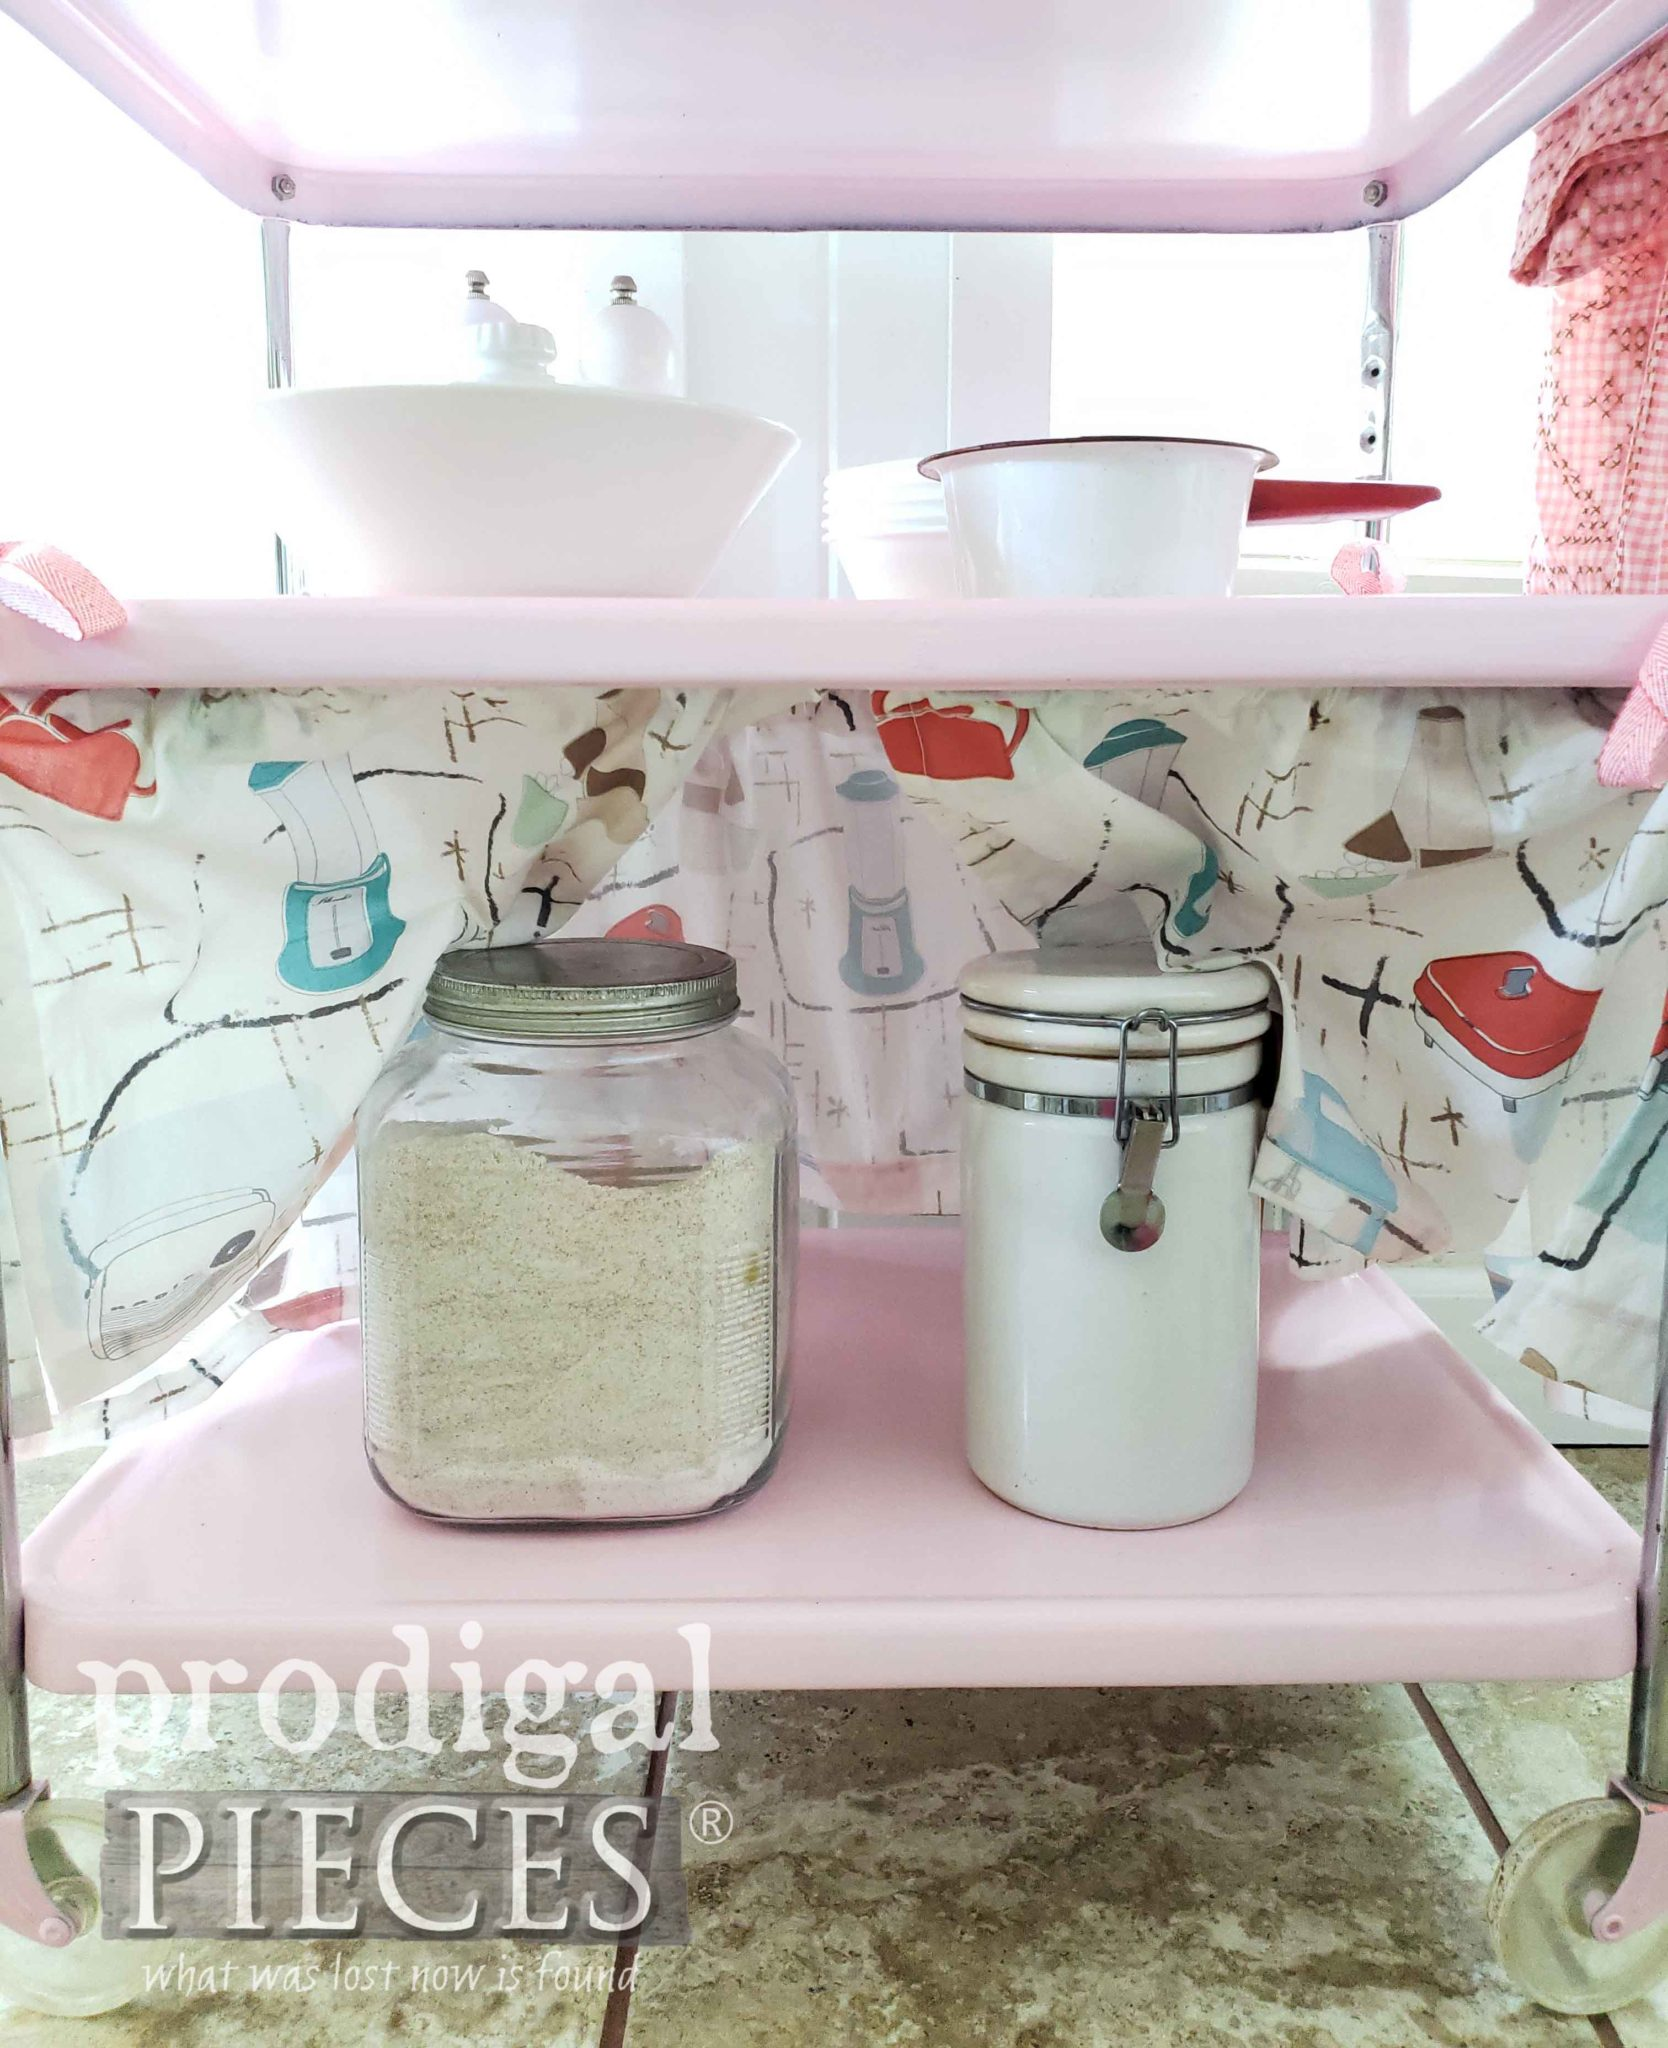 DIY Dust Ruffle Skirt for Vintage Cosco Cart by Larissa of Prodigal Pieces | prodigalpieces.com #prodigalpieces #diy #home #vintage #homedecor #furniture